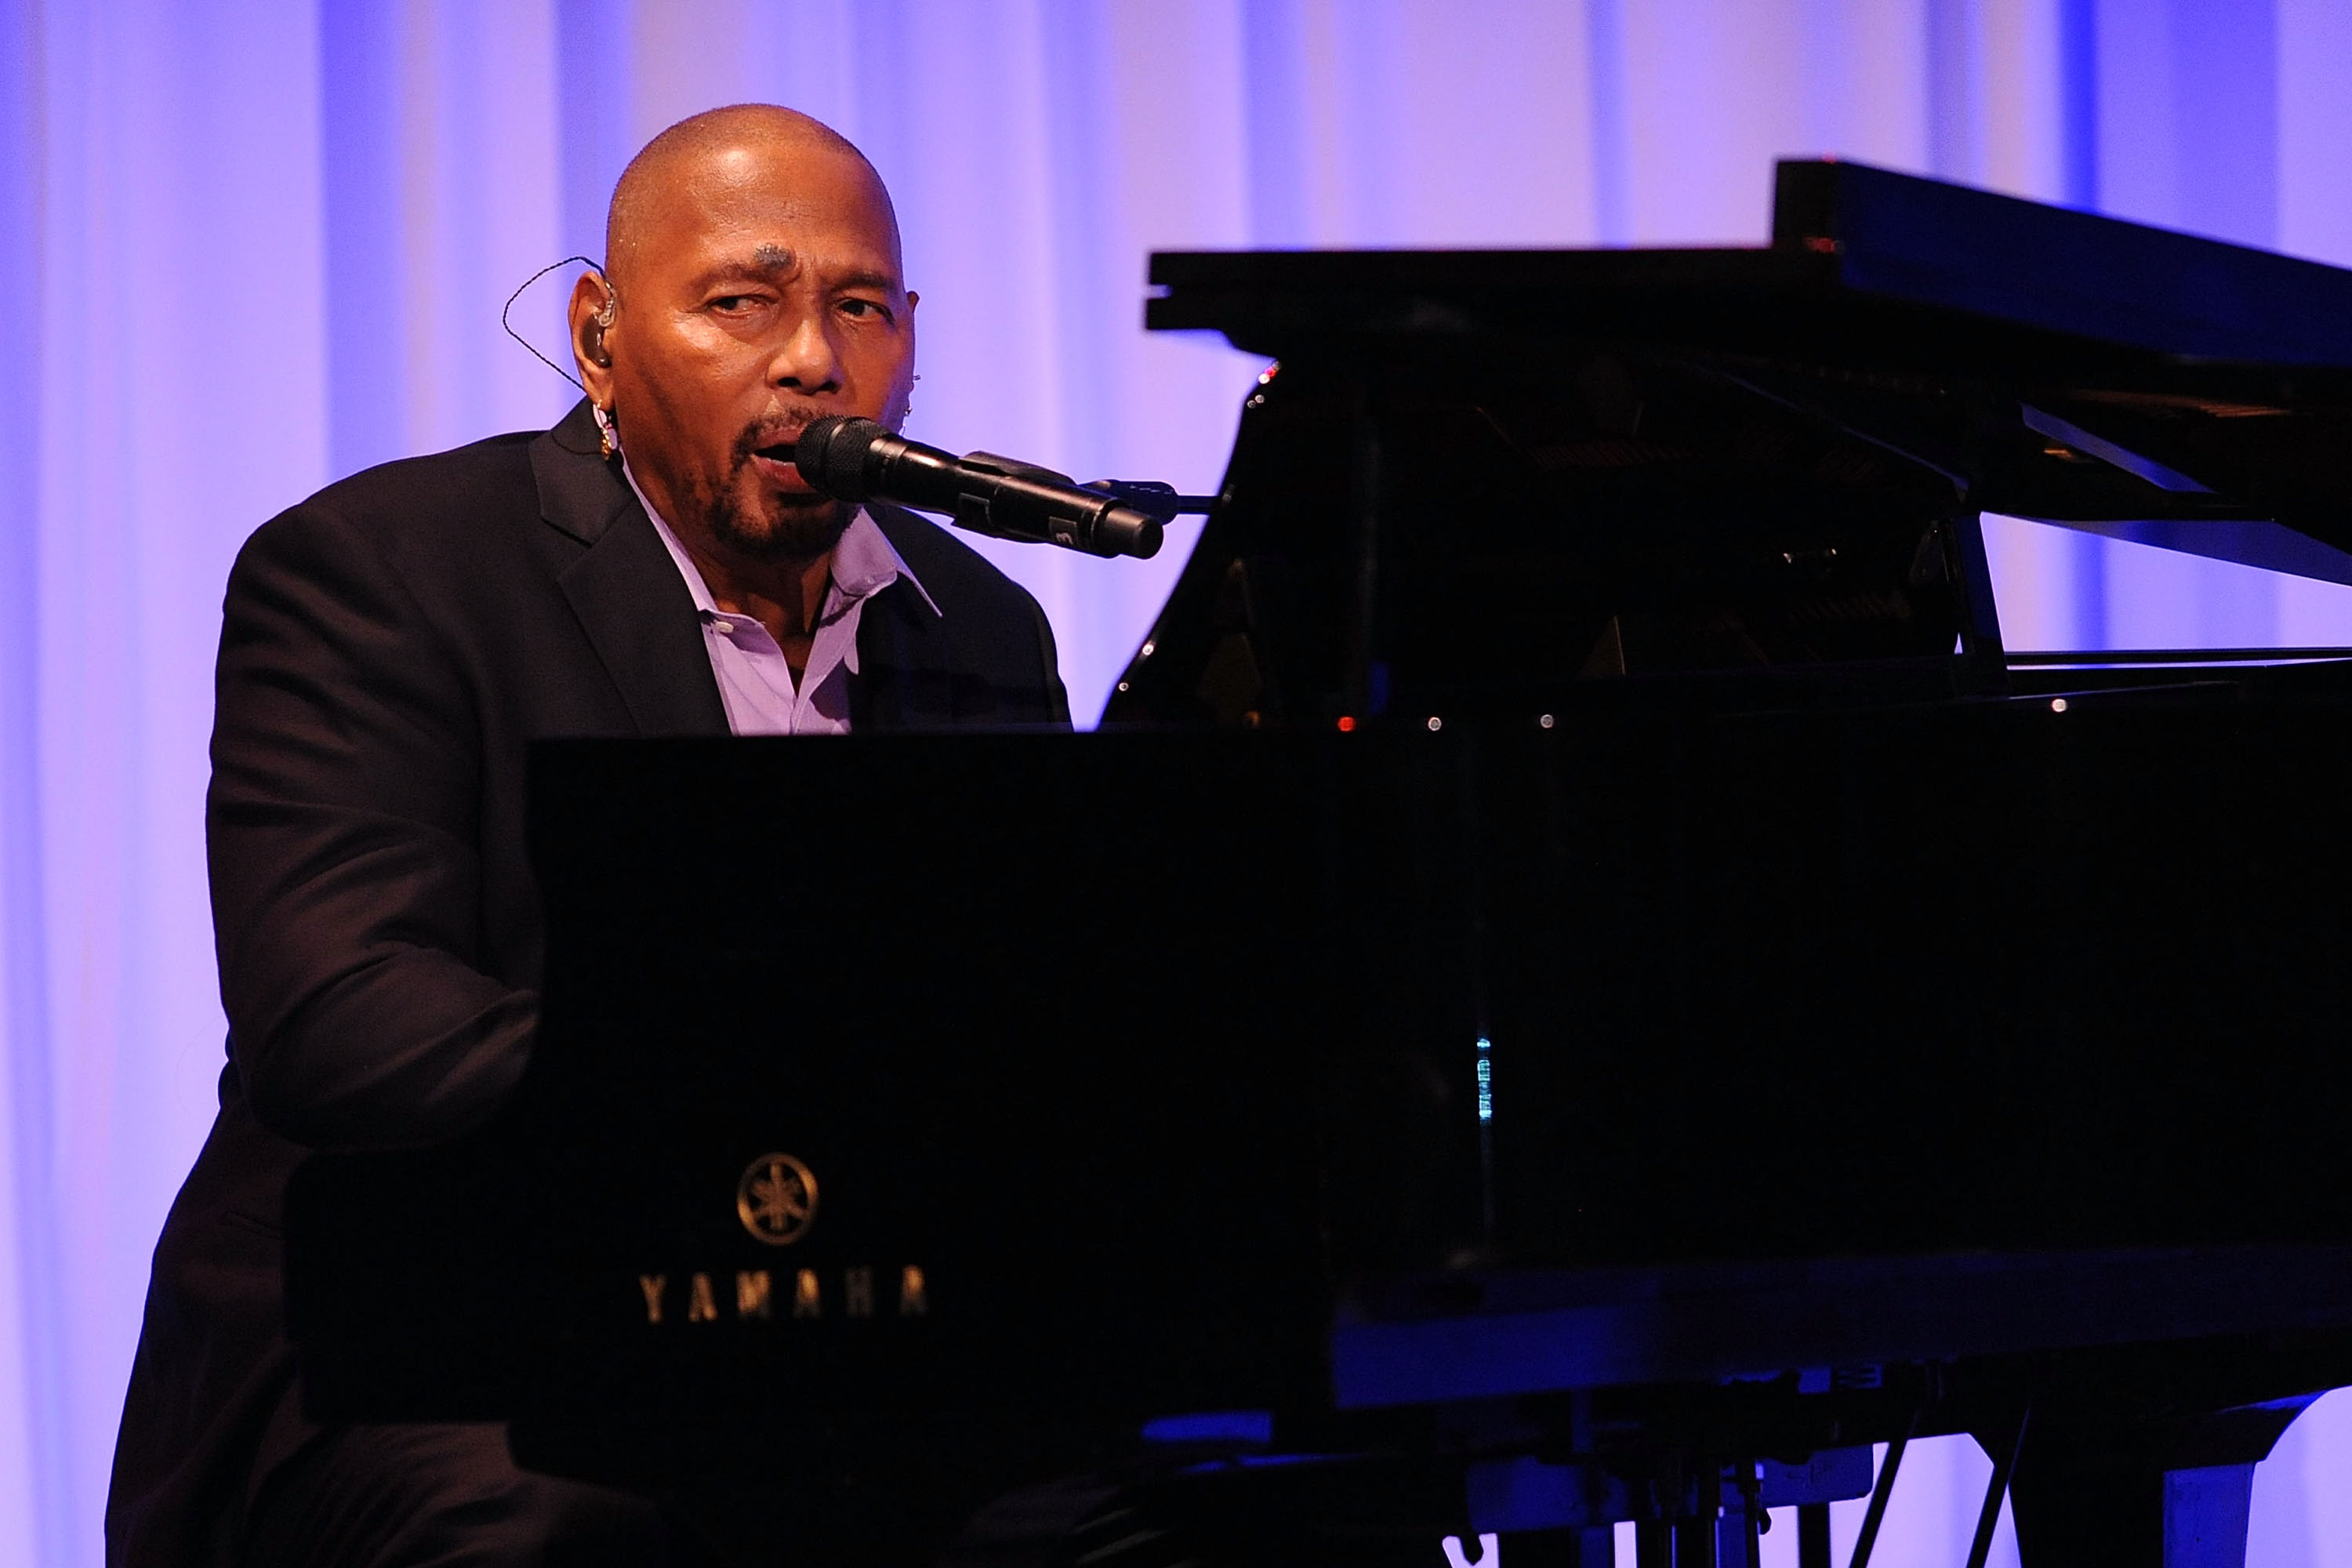 Aaron Neville plays at the 2012 DOE Fund Gala at Cipriani 42nd Street on October 25, 2012 in New York City. Courtsey shaharimages.com